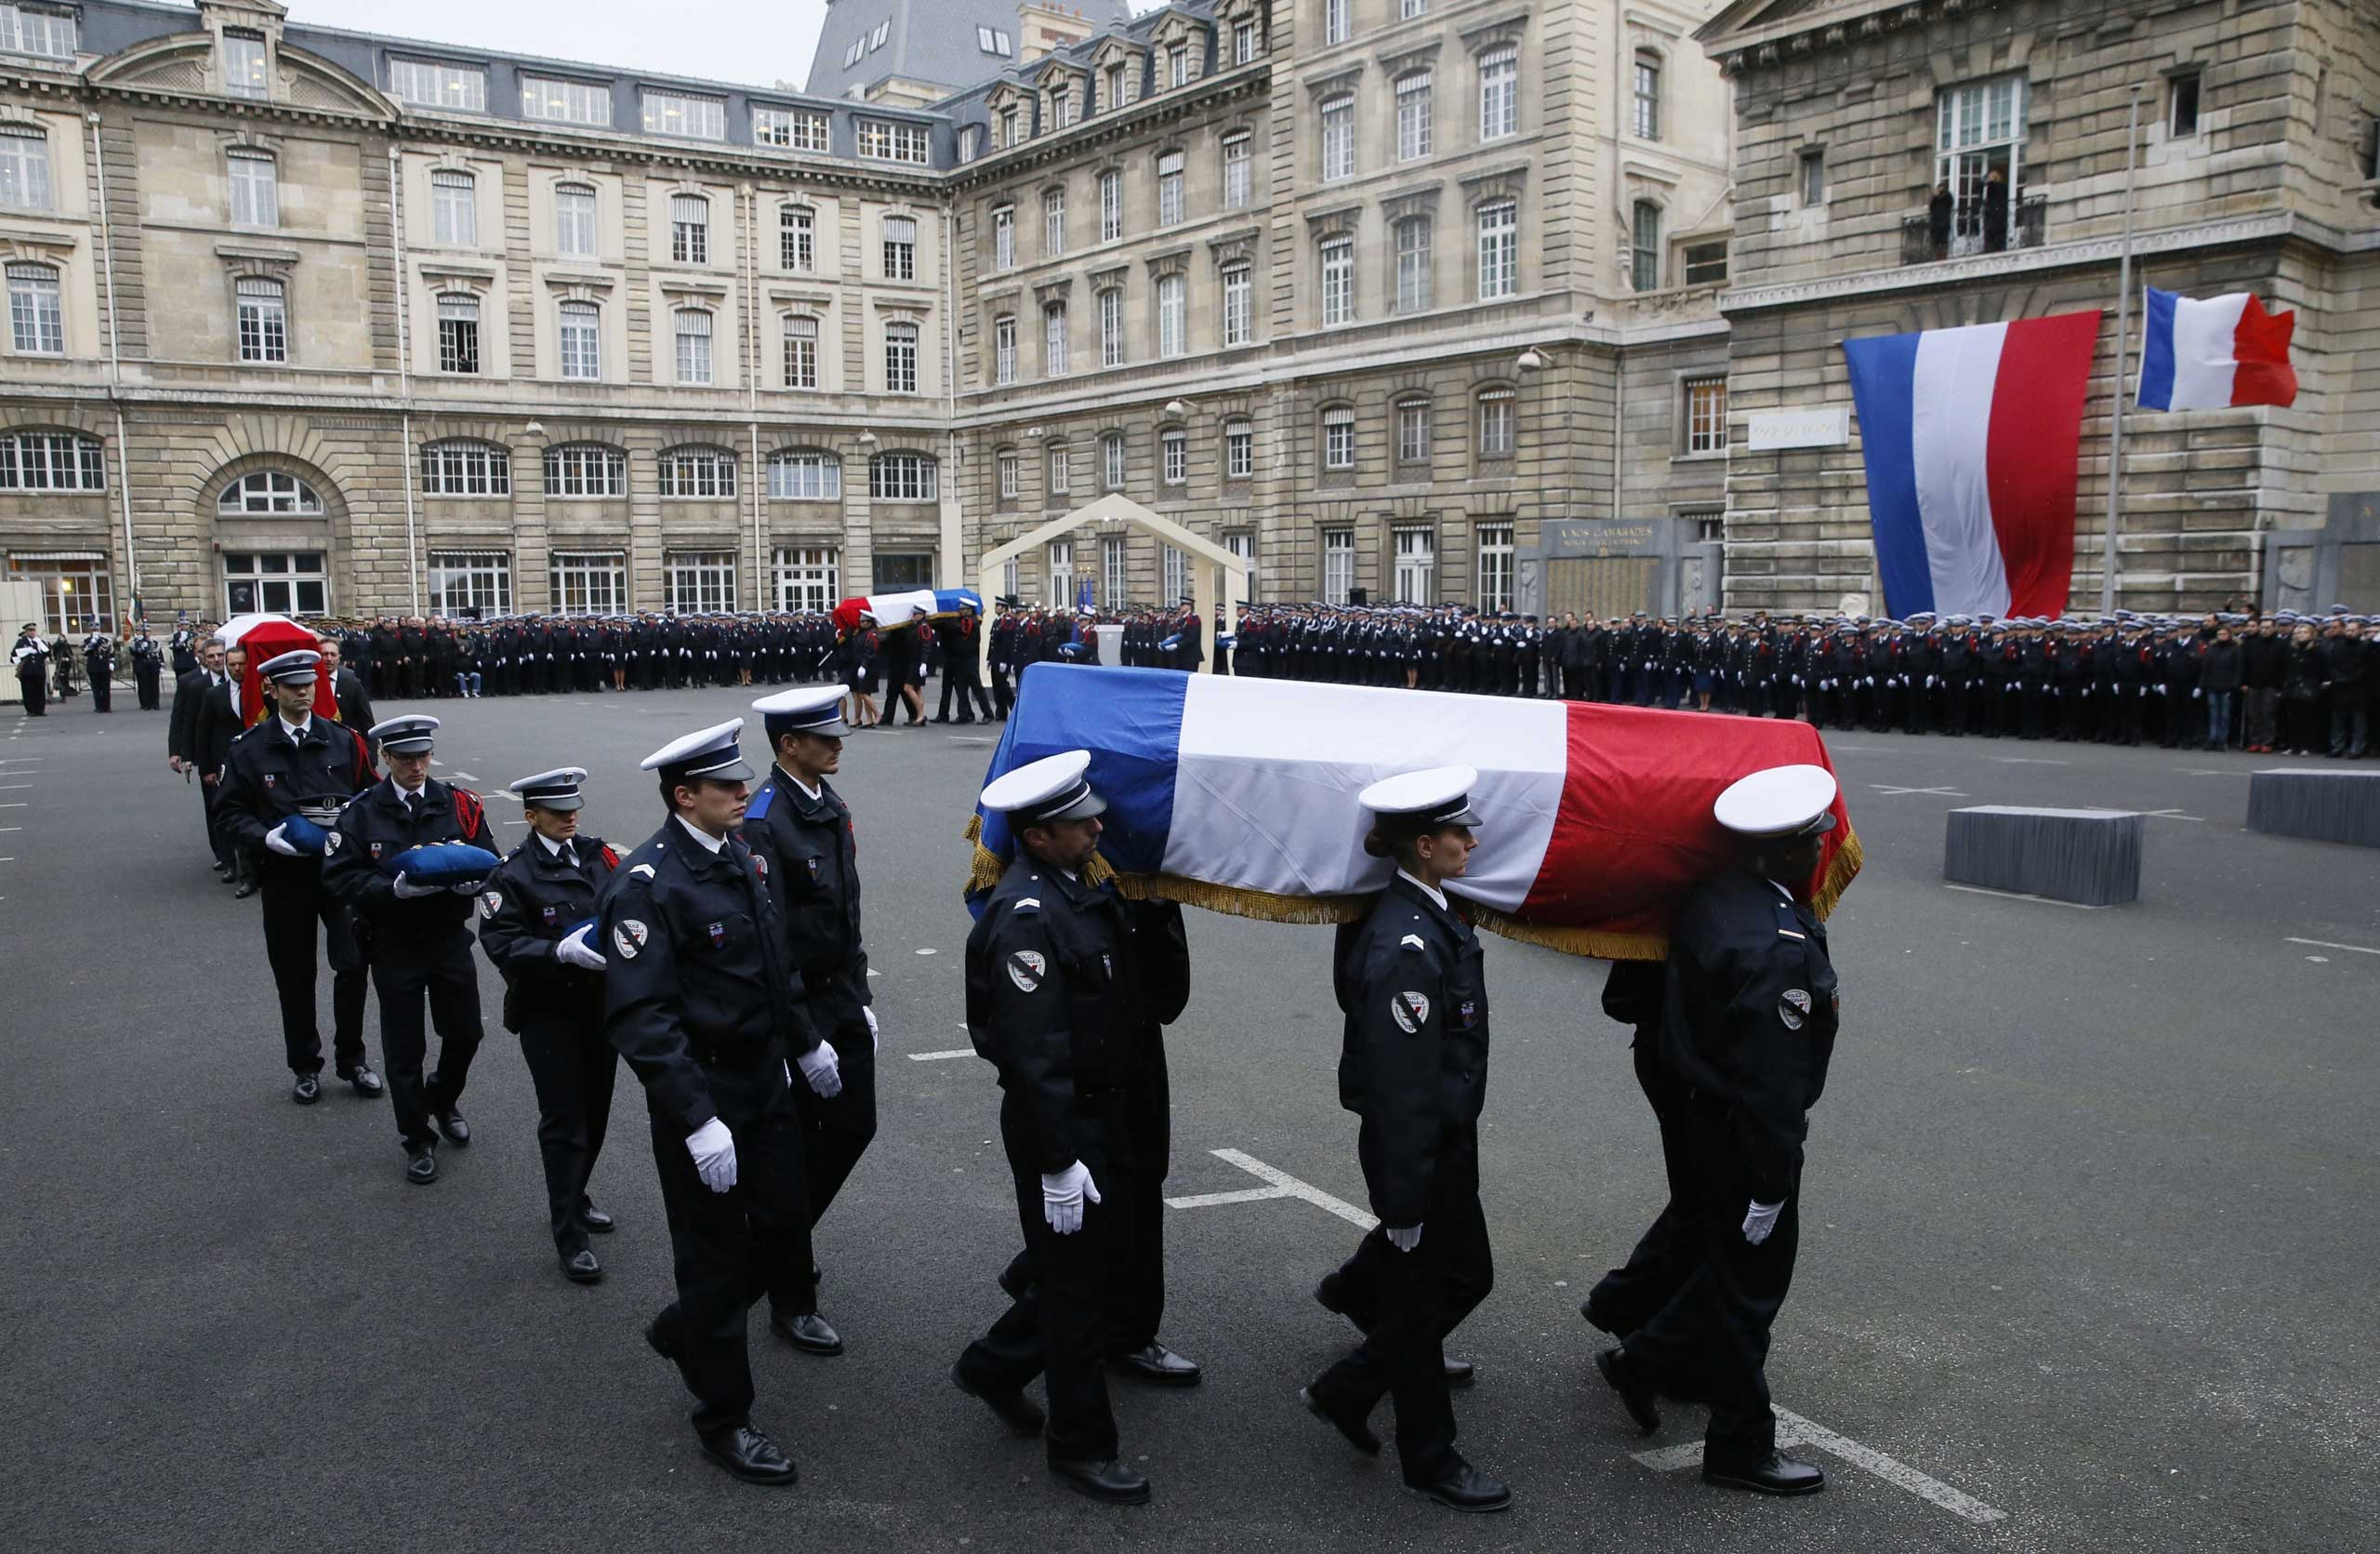 Police officers carry the flag-draped coffins of three police officers killed in the recent terror attacks during a ceremony to posthumously decorate them with the Légion d'Honneur at the Invalides in Paris, France, on Jan. 13, 2015.